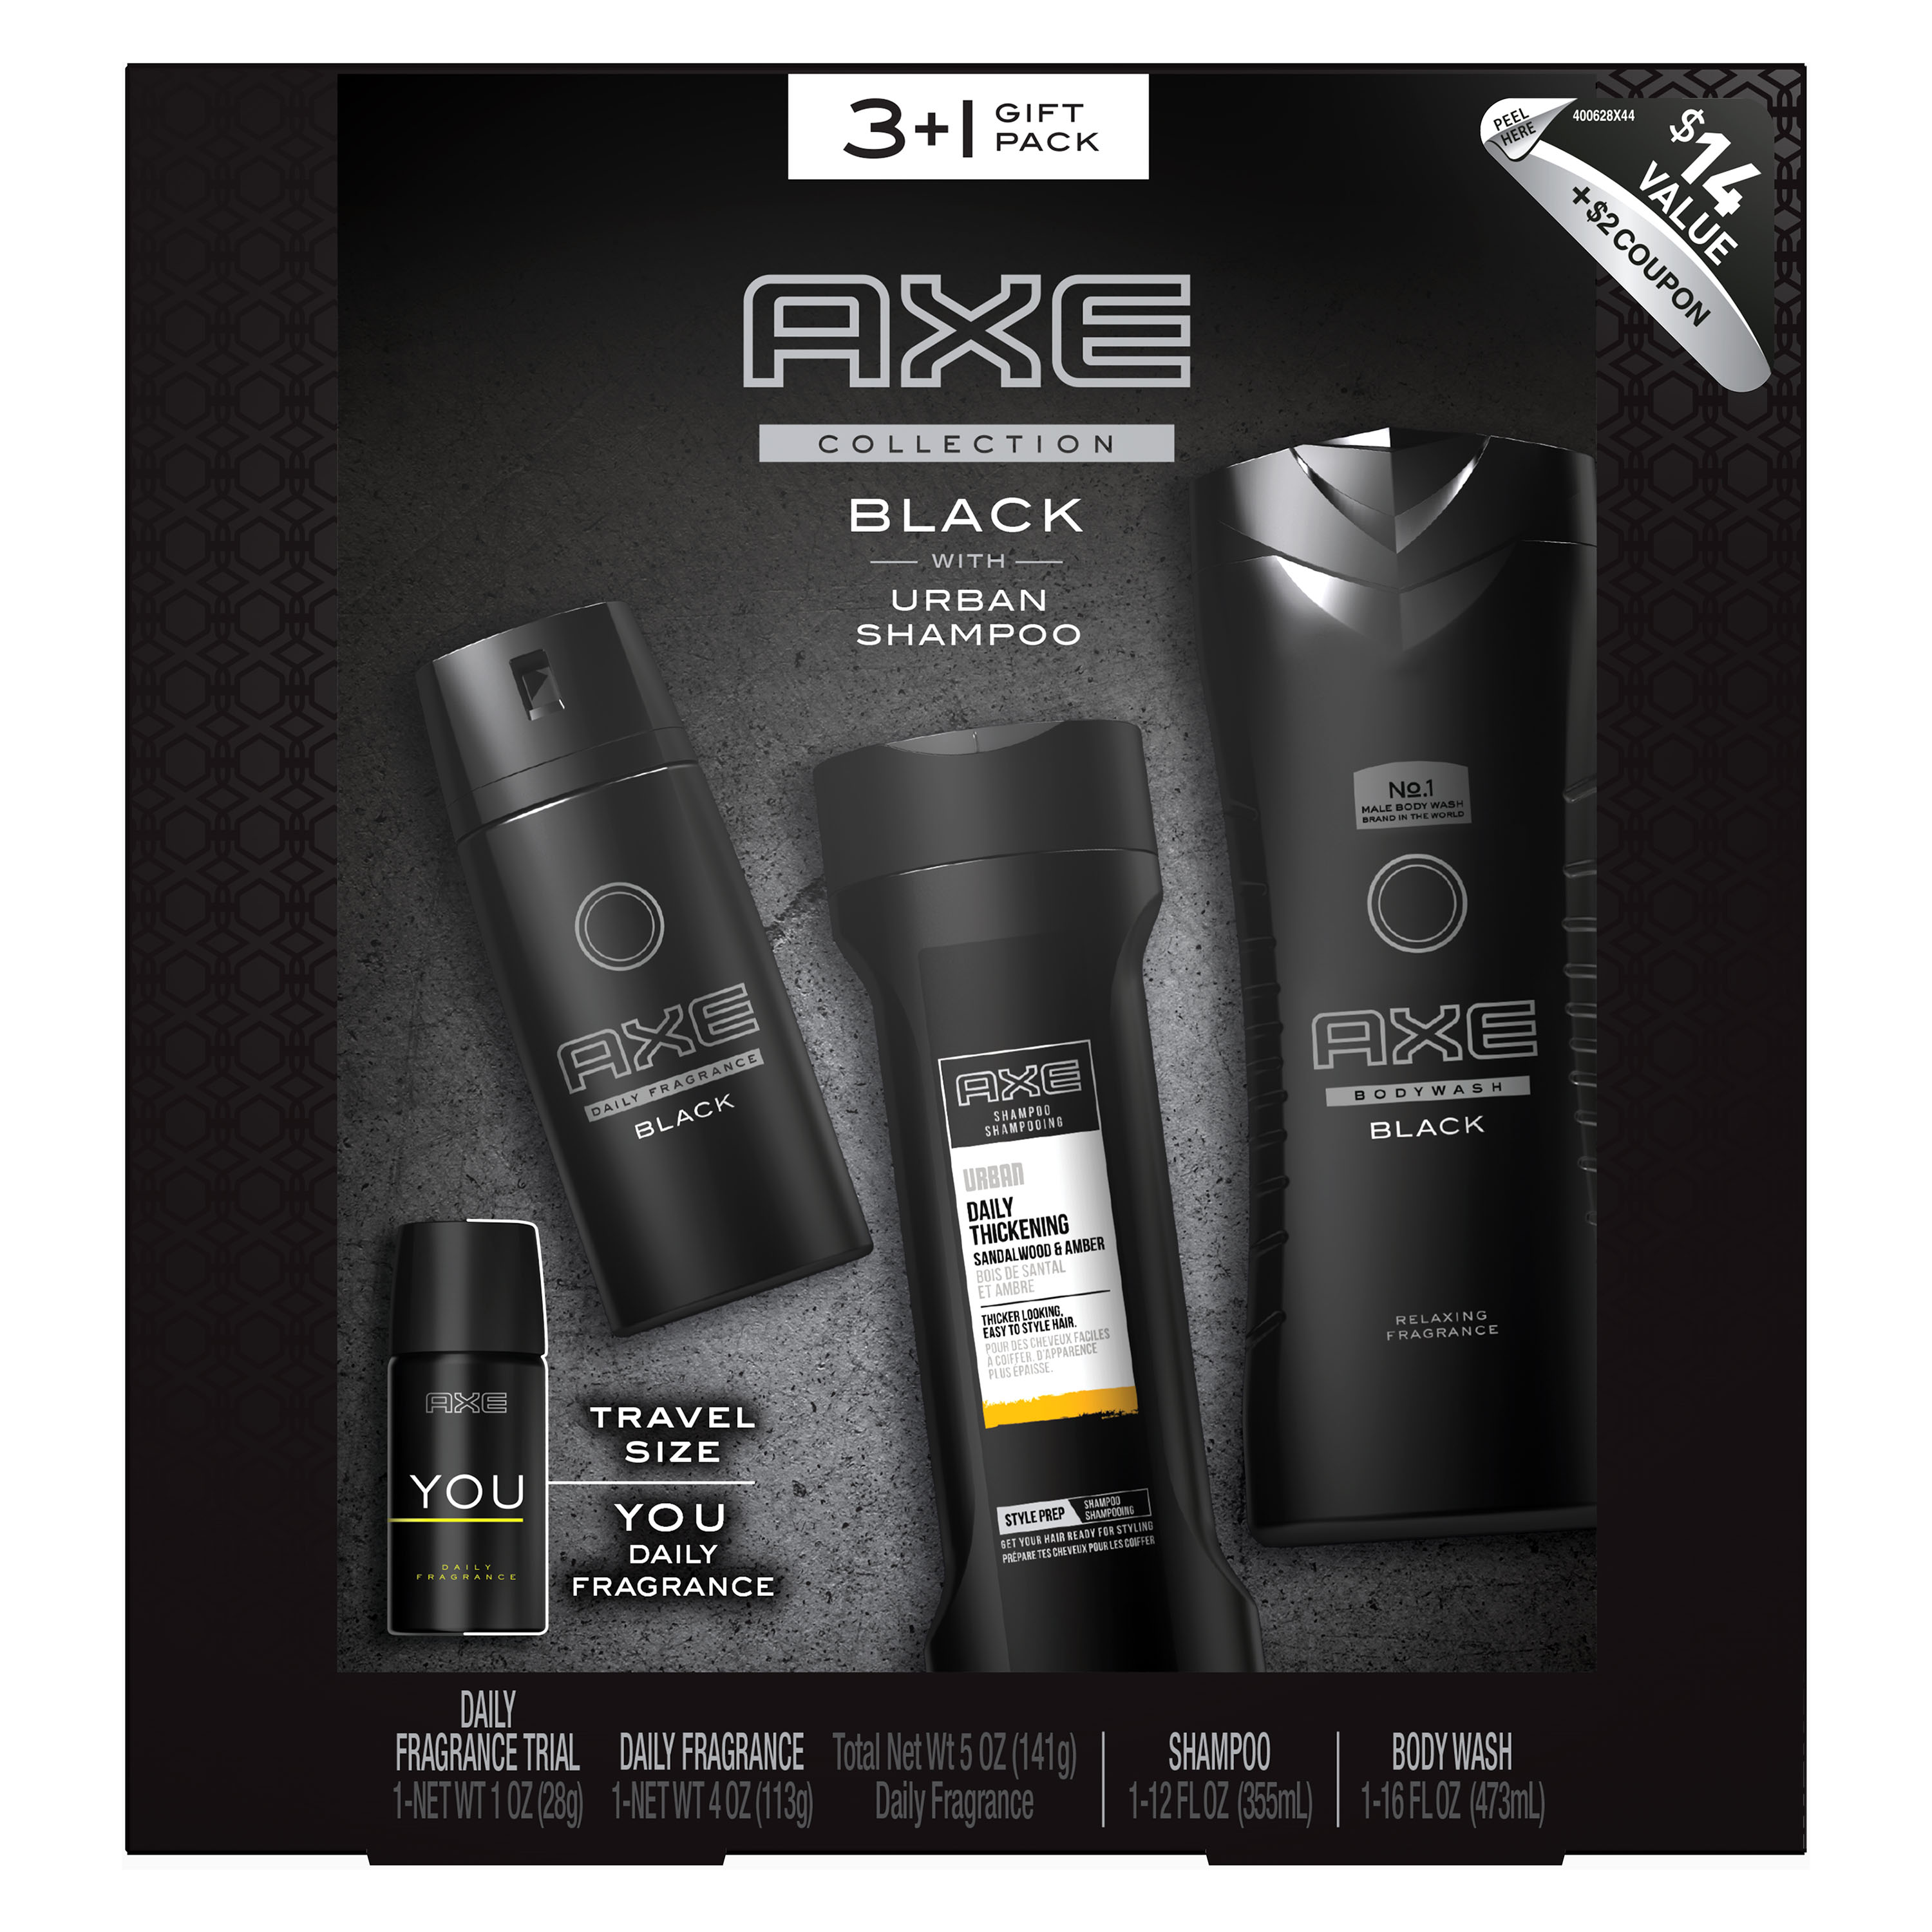 AXE Black Holiday Gift Box (Body Spray / Body Wash / 2-in-1 Shampoo & Conditioner / Bonus Travel Body Spray), 4 Pieces